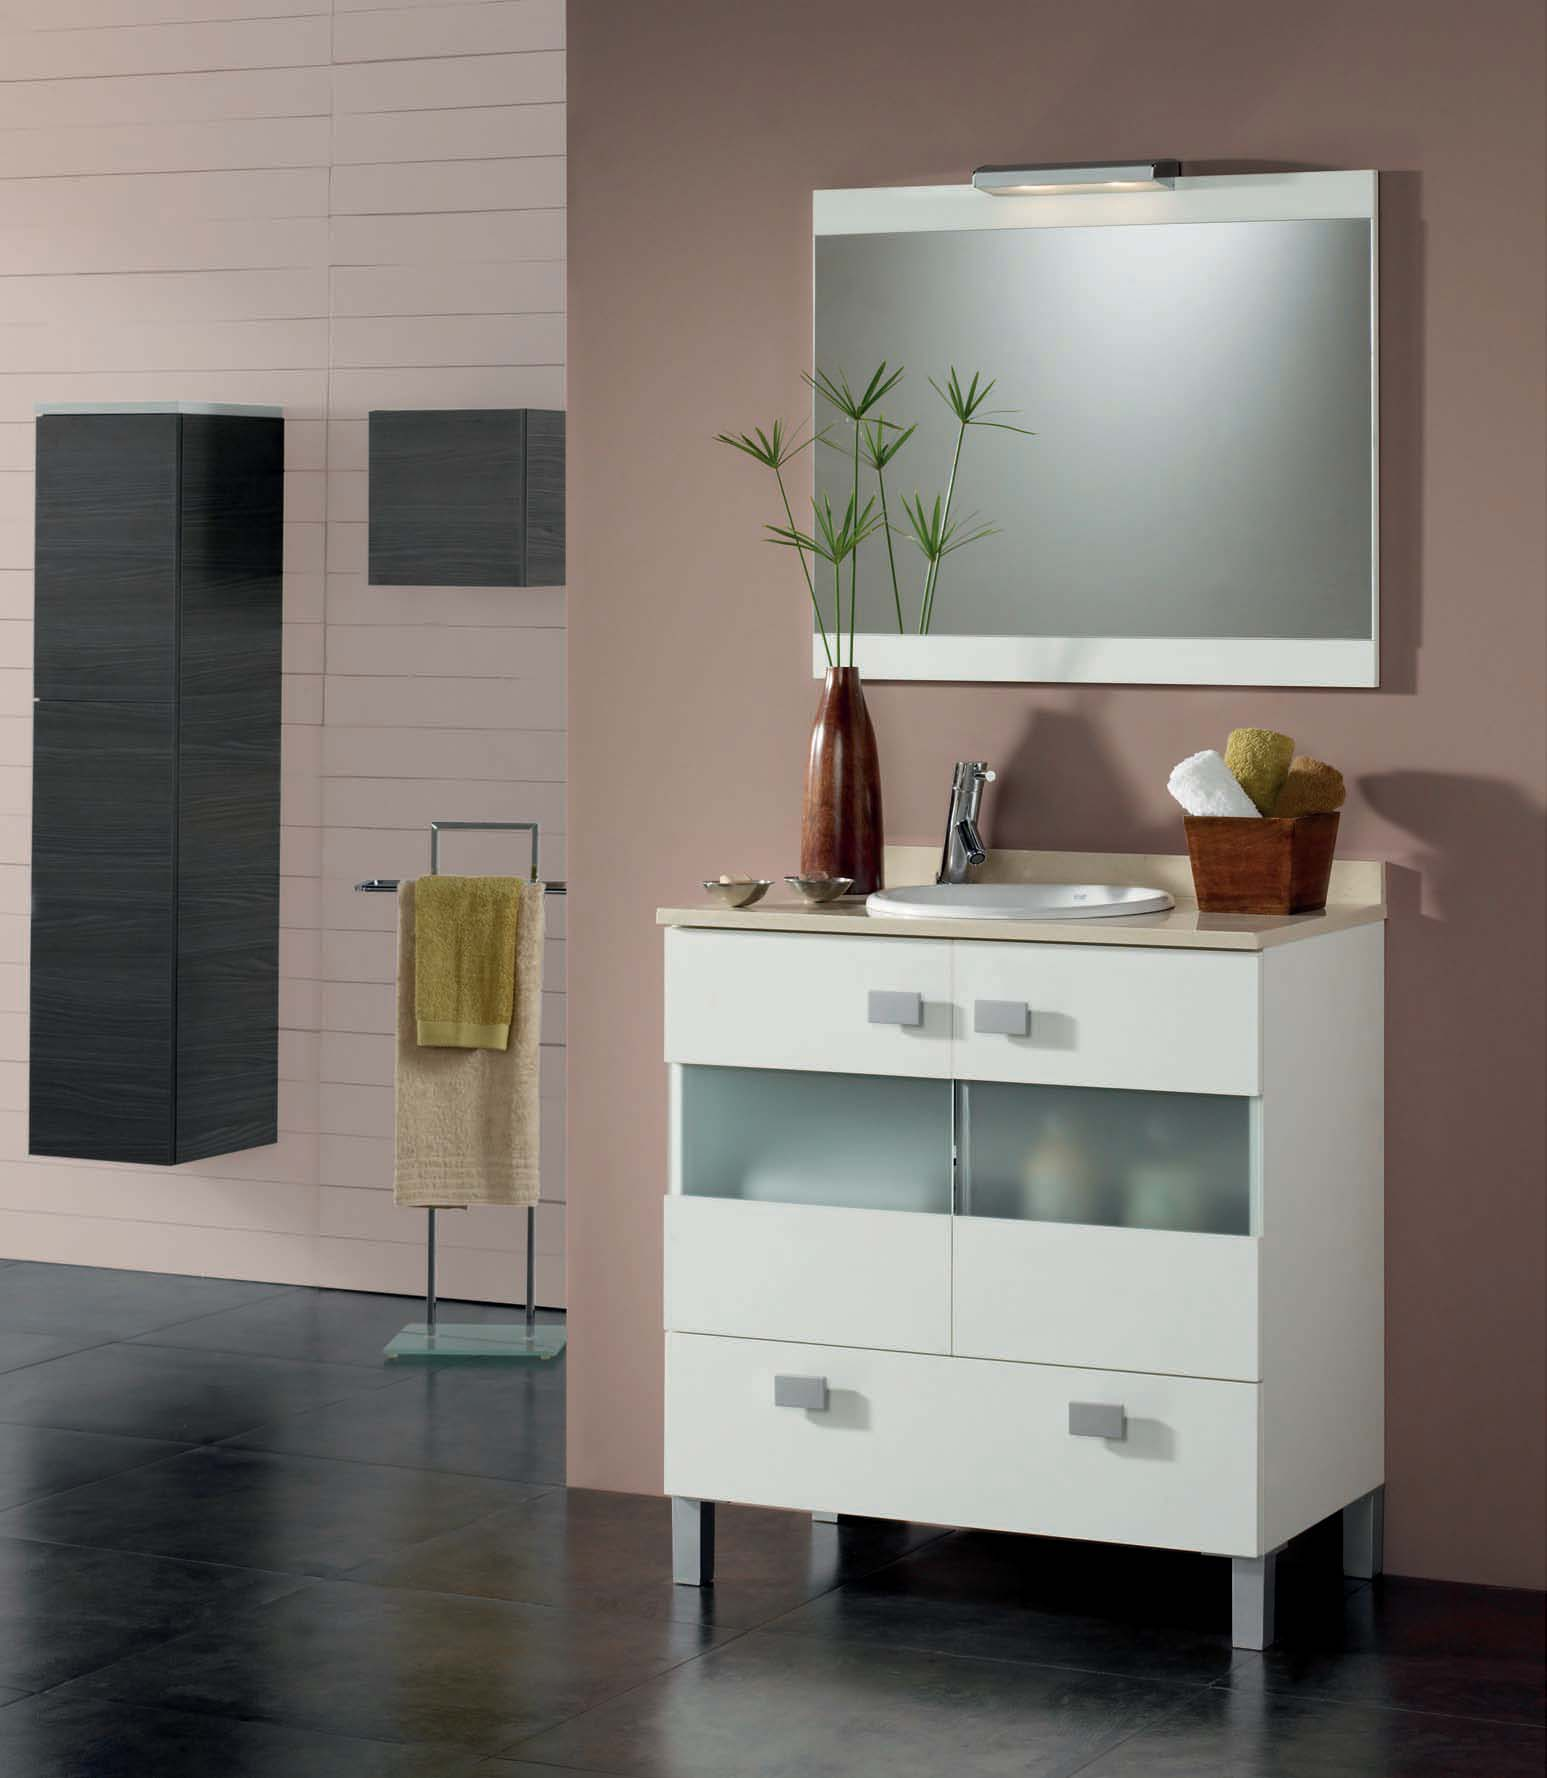 09 10 urban urban 73 45 /color mueble cm....285.